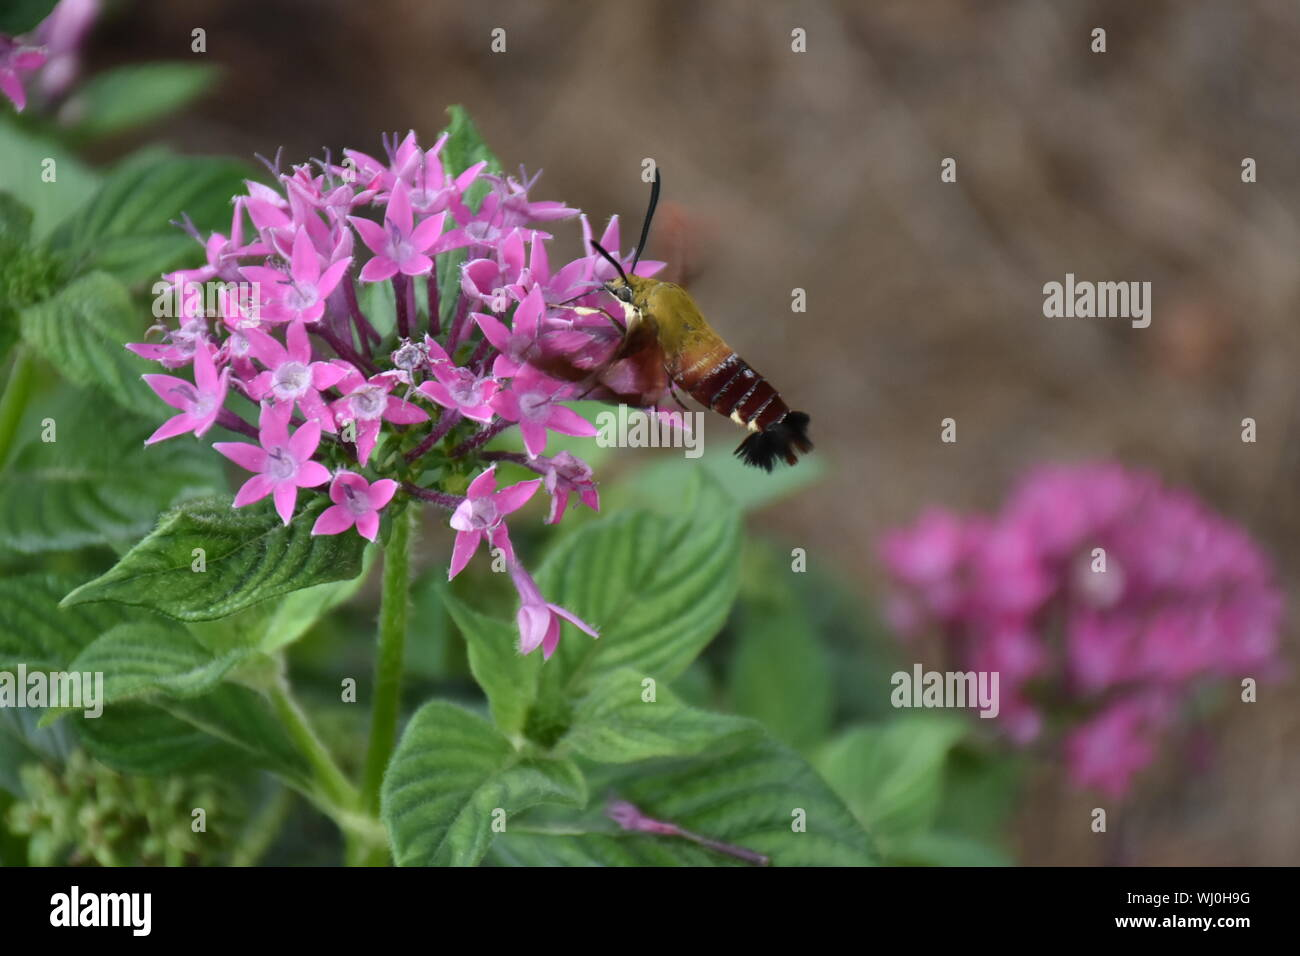 A closeup nature photograph of a Hummingbird Clearwing Moth feeding on a flower. This Hemaris diffinis is feeding. Also known as bee hawk-moth. Stock Photo